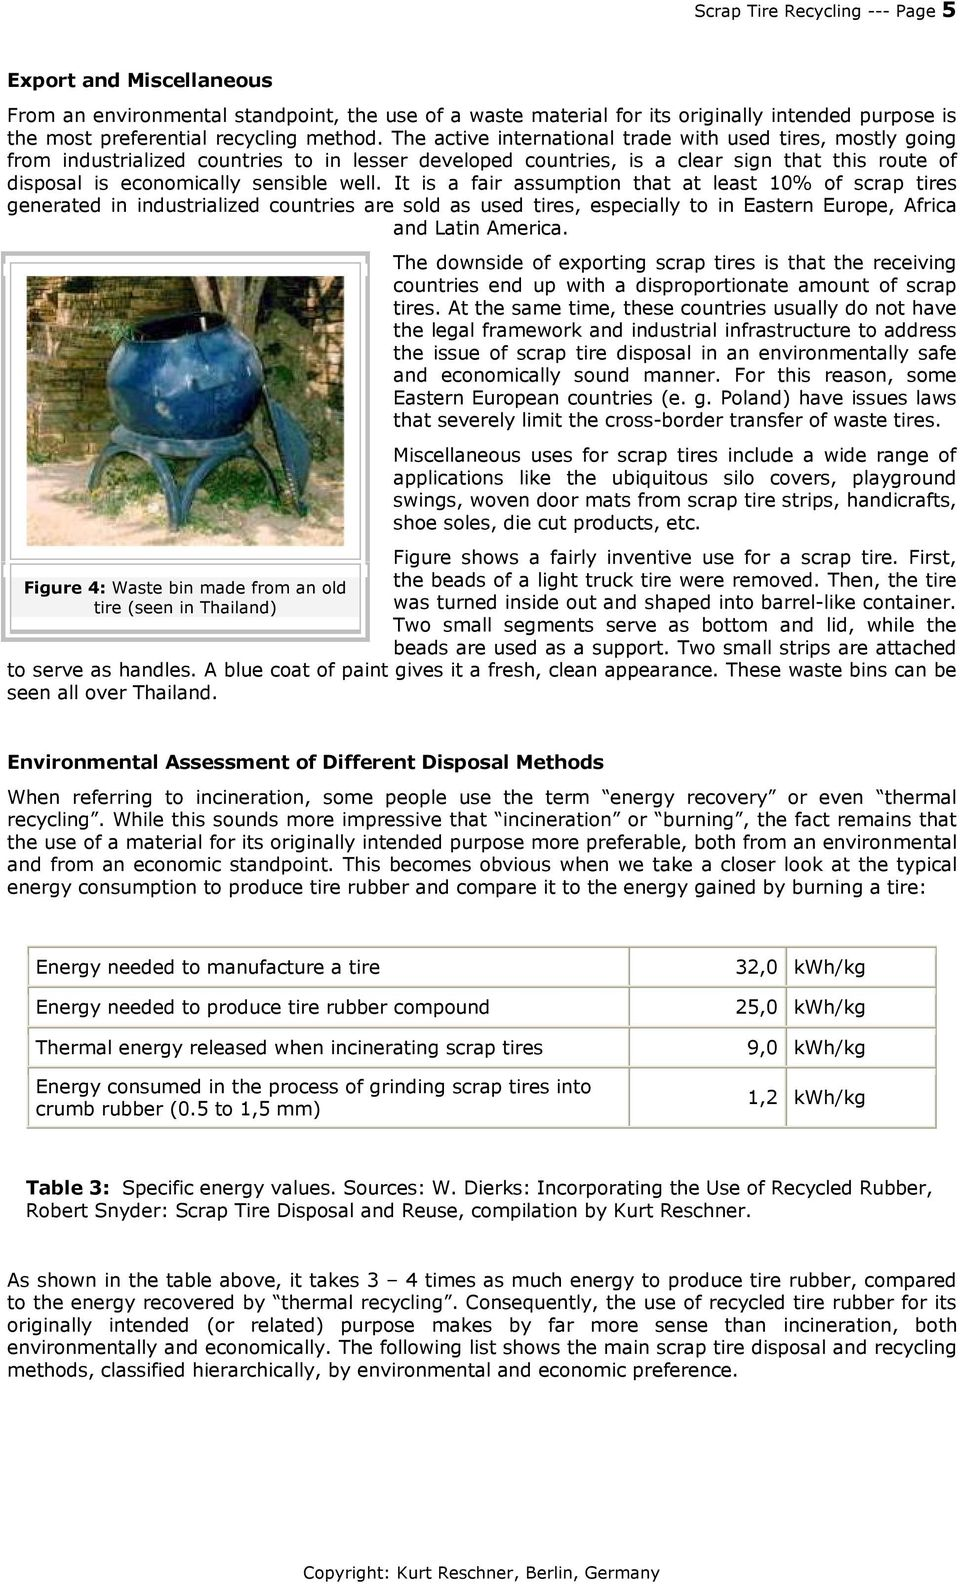 Scrap Tire Recycling  A Summary of Prevalent Disposal and Recycling